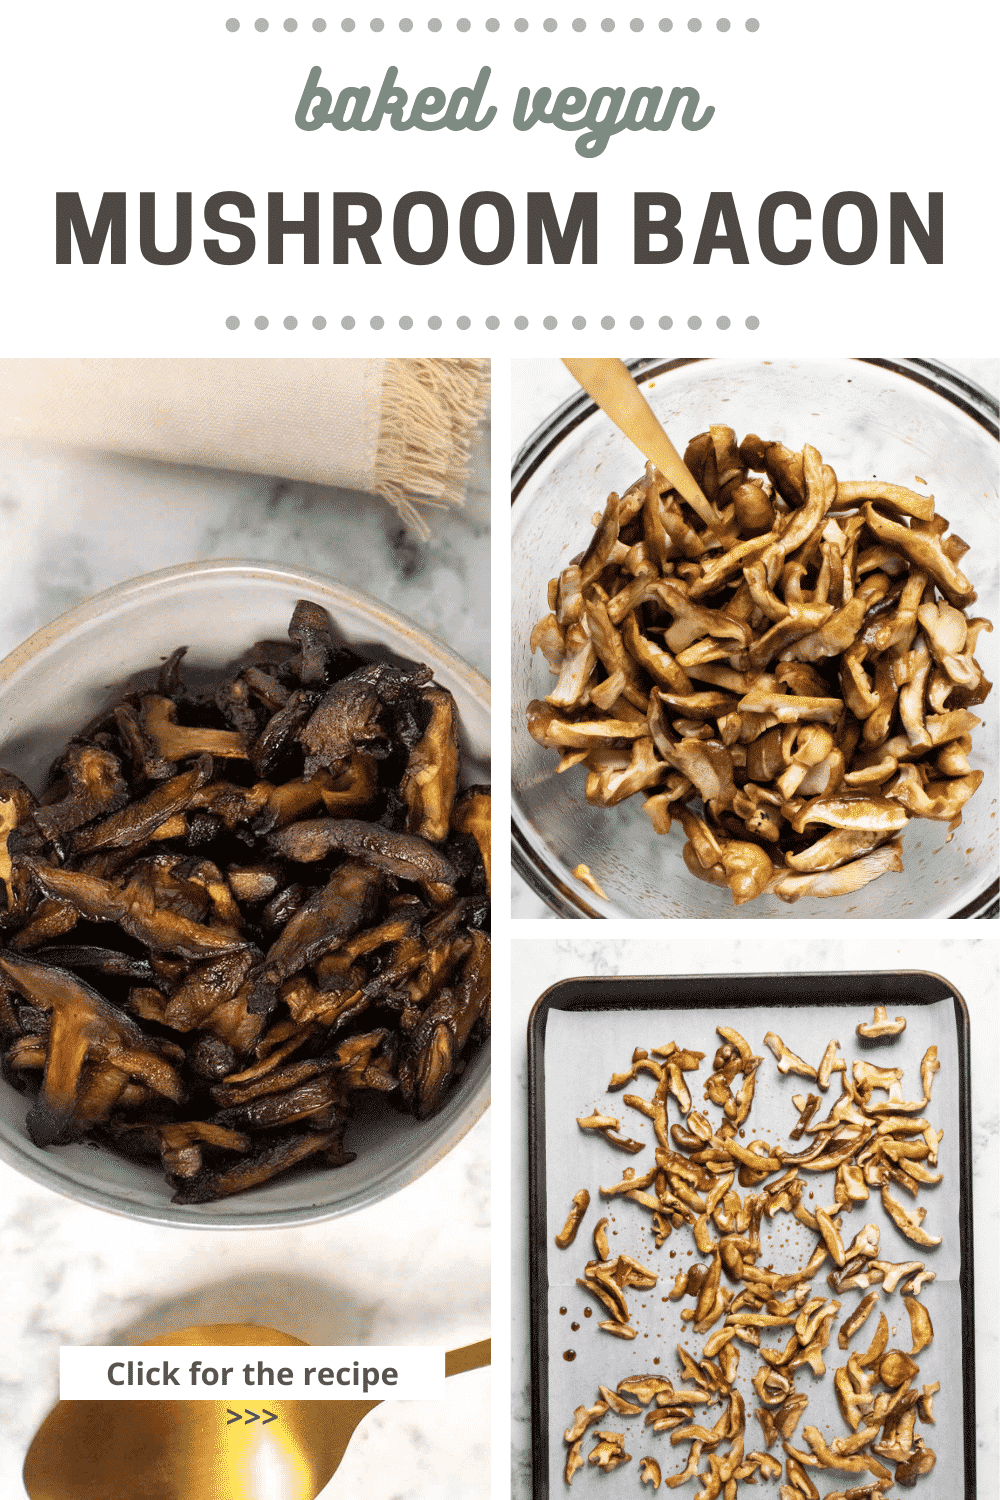 image collage of mushroom bacon ingredients, seasoned mushrooms in a bowl, and spread out on a baking sheet